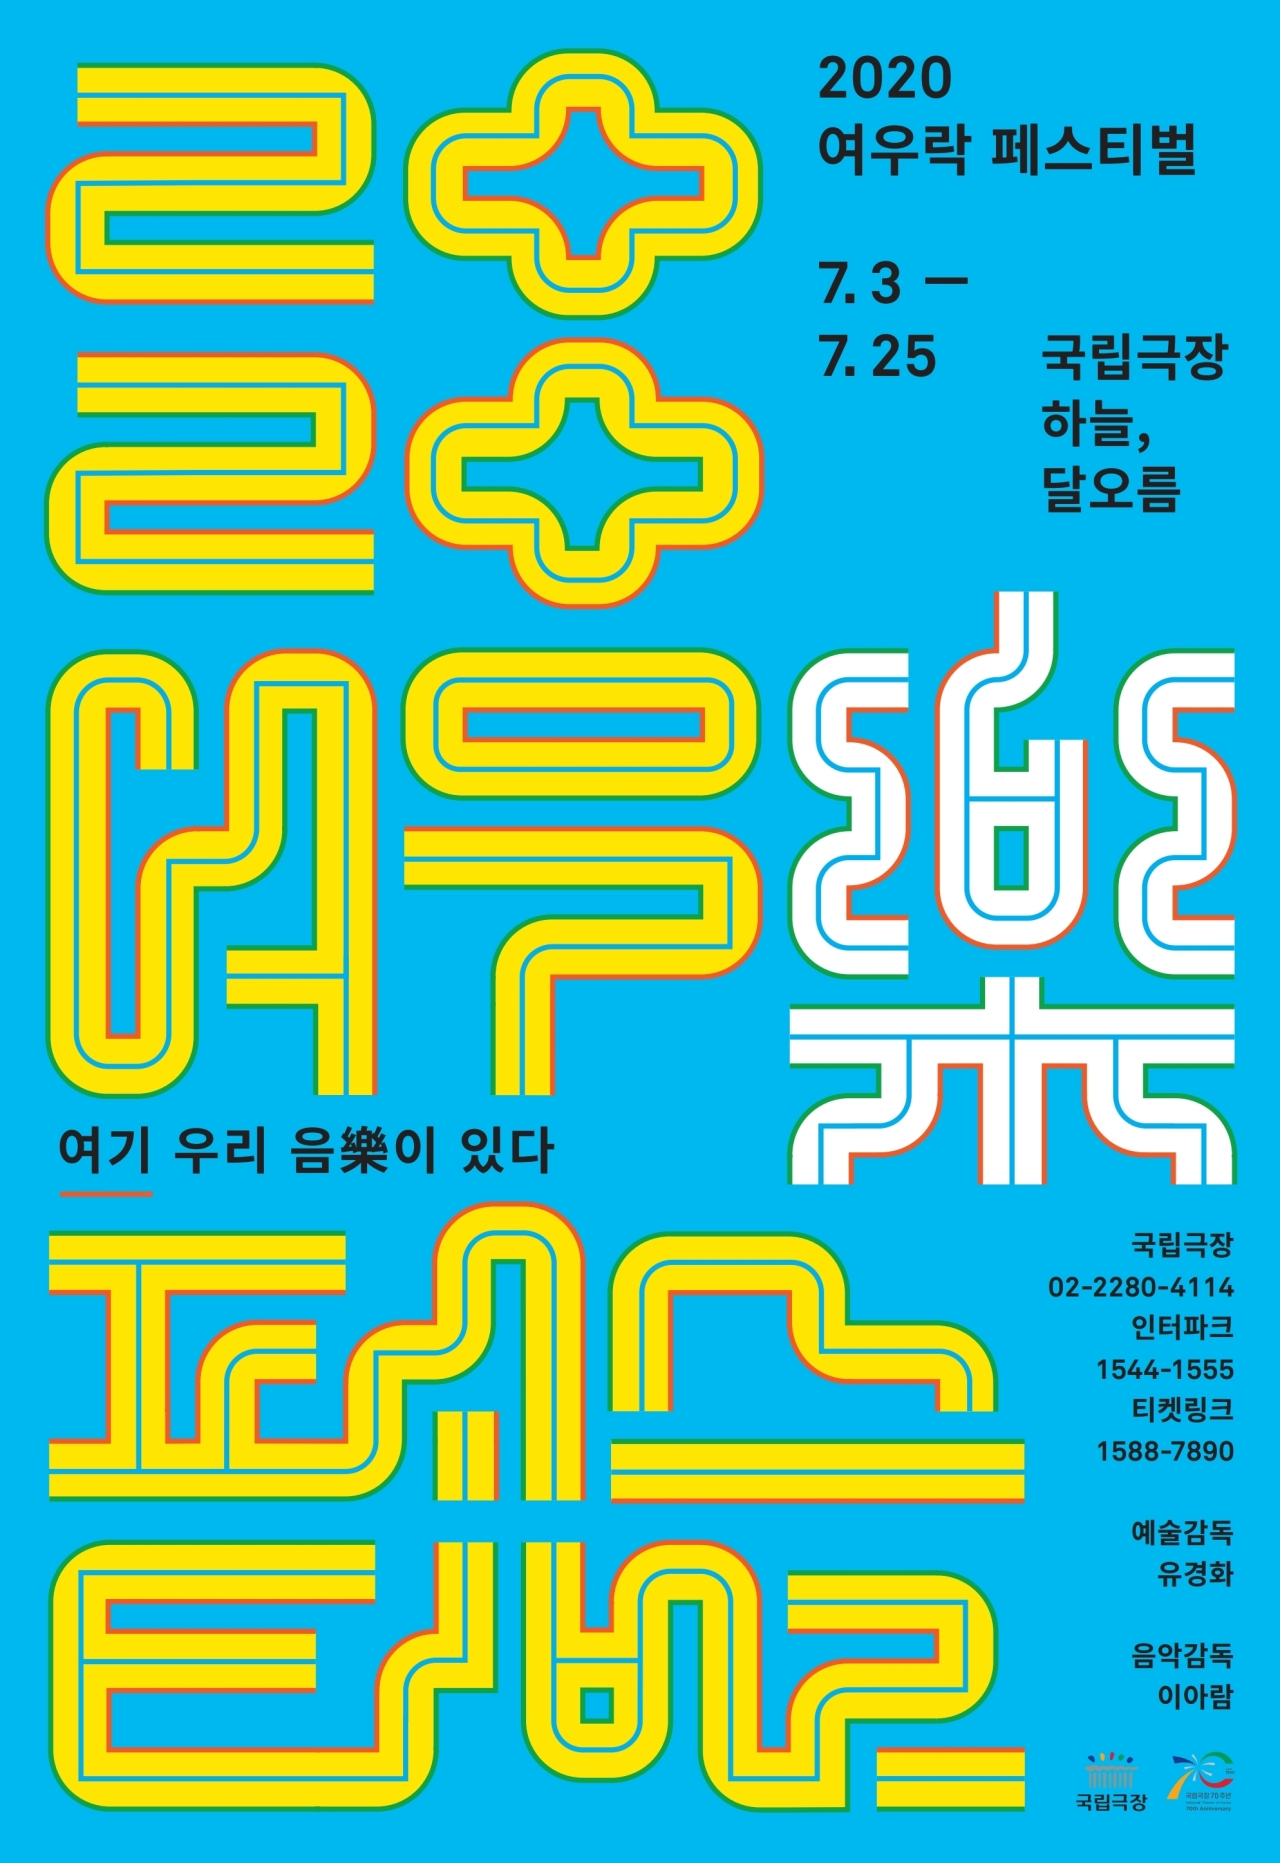 Poster for 11th Yeowoorak Festival (NToK)